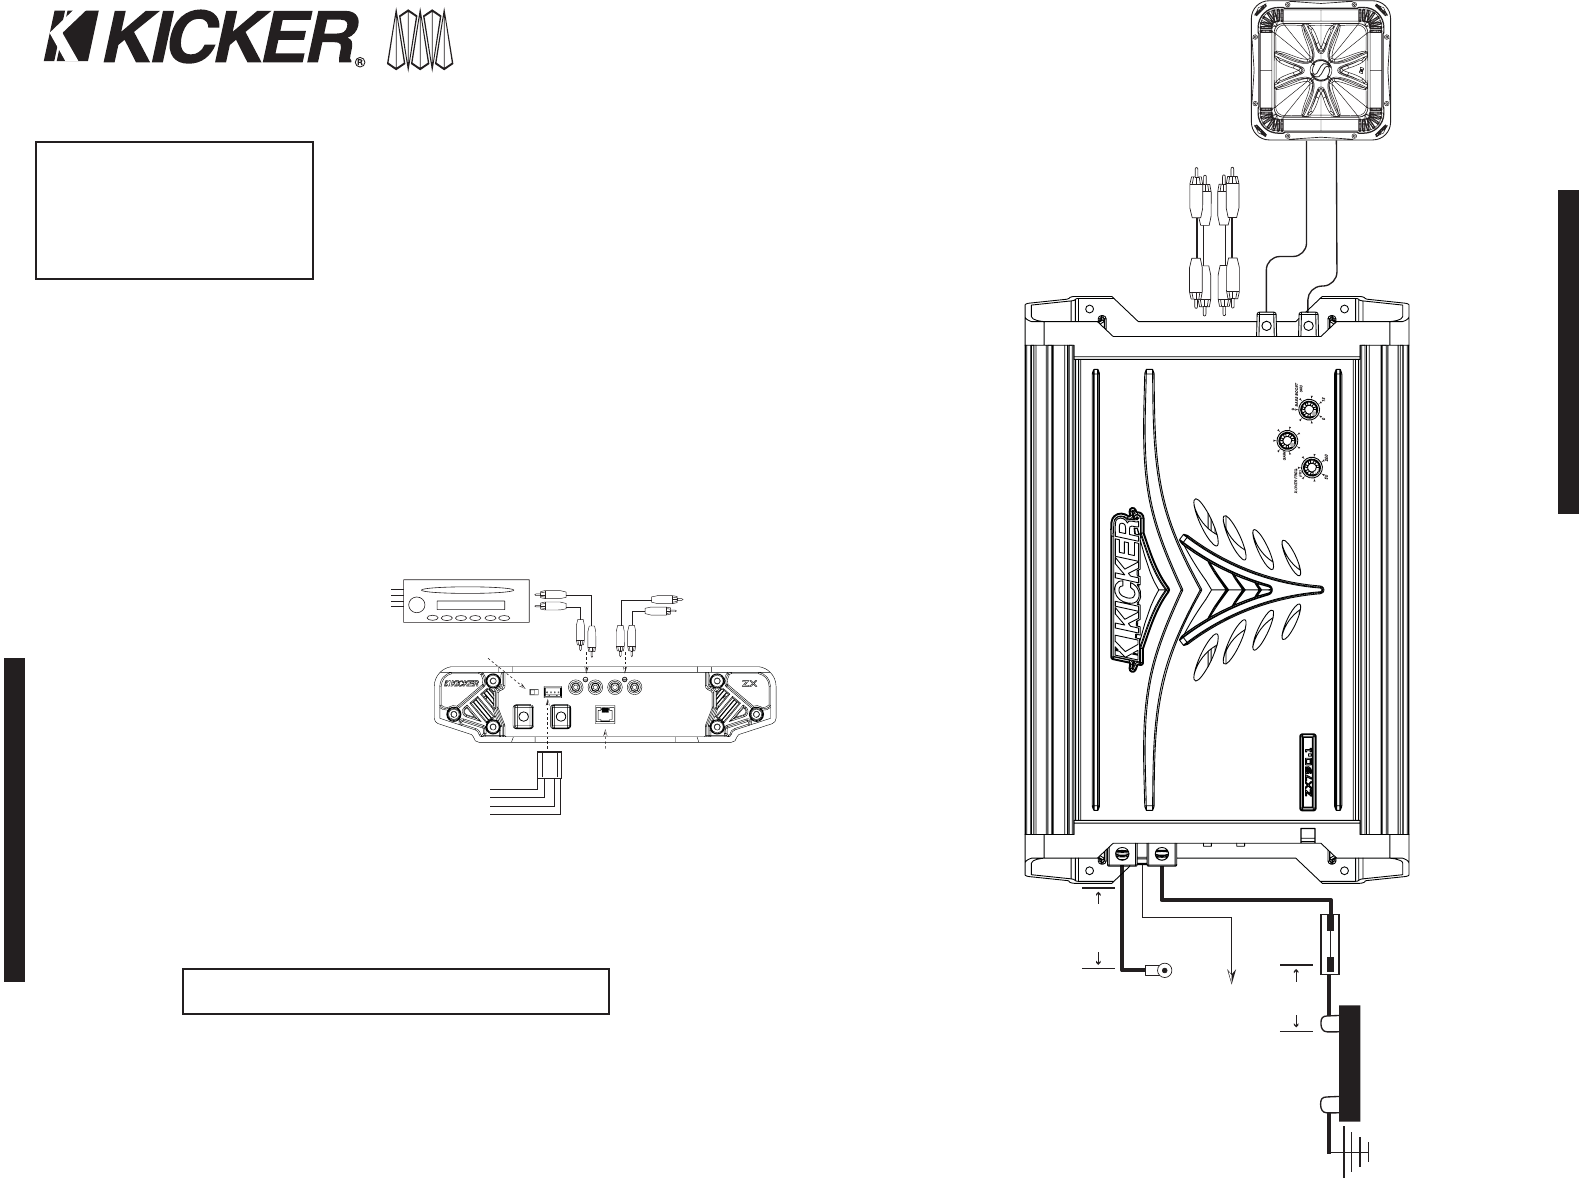 52b01e54 9f83 4566 bf8f 2f821065ce6f bg2 page 2 of kicker stereo amplifier zx400 1 user guide 4 Channel Amp Wiring Diagram at bayanpartner.co